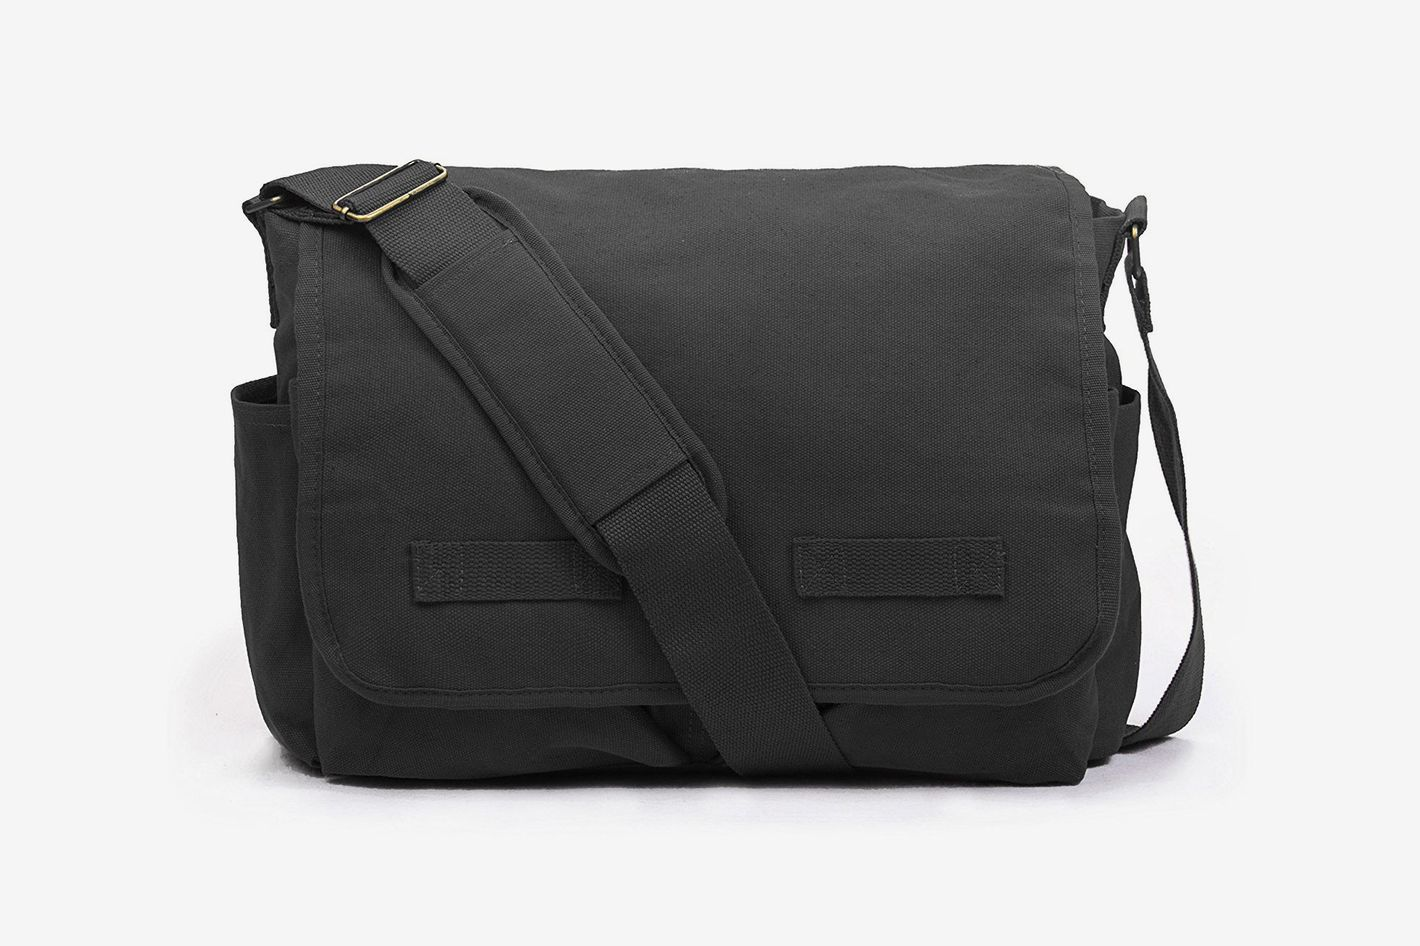 9287b5ac69f9 11 Best Messenger Bags for Men 2018